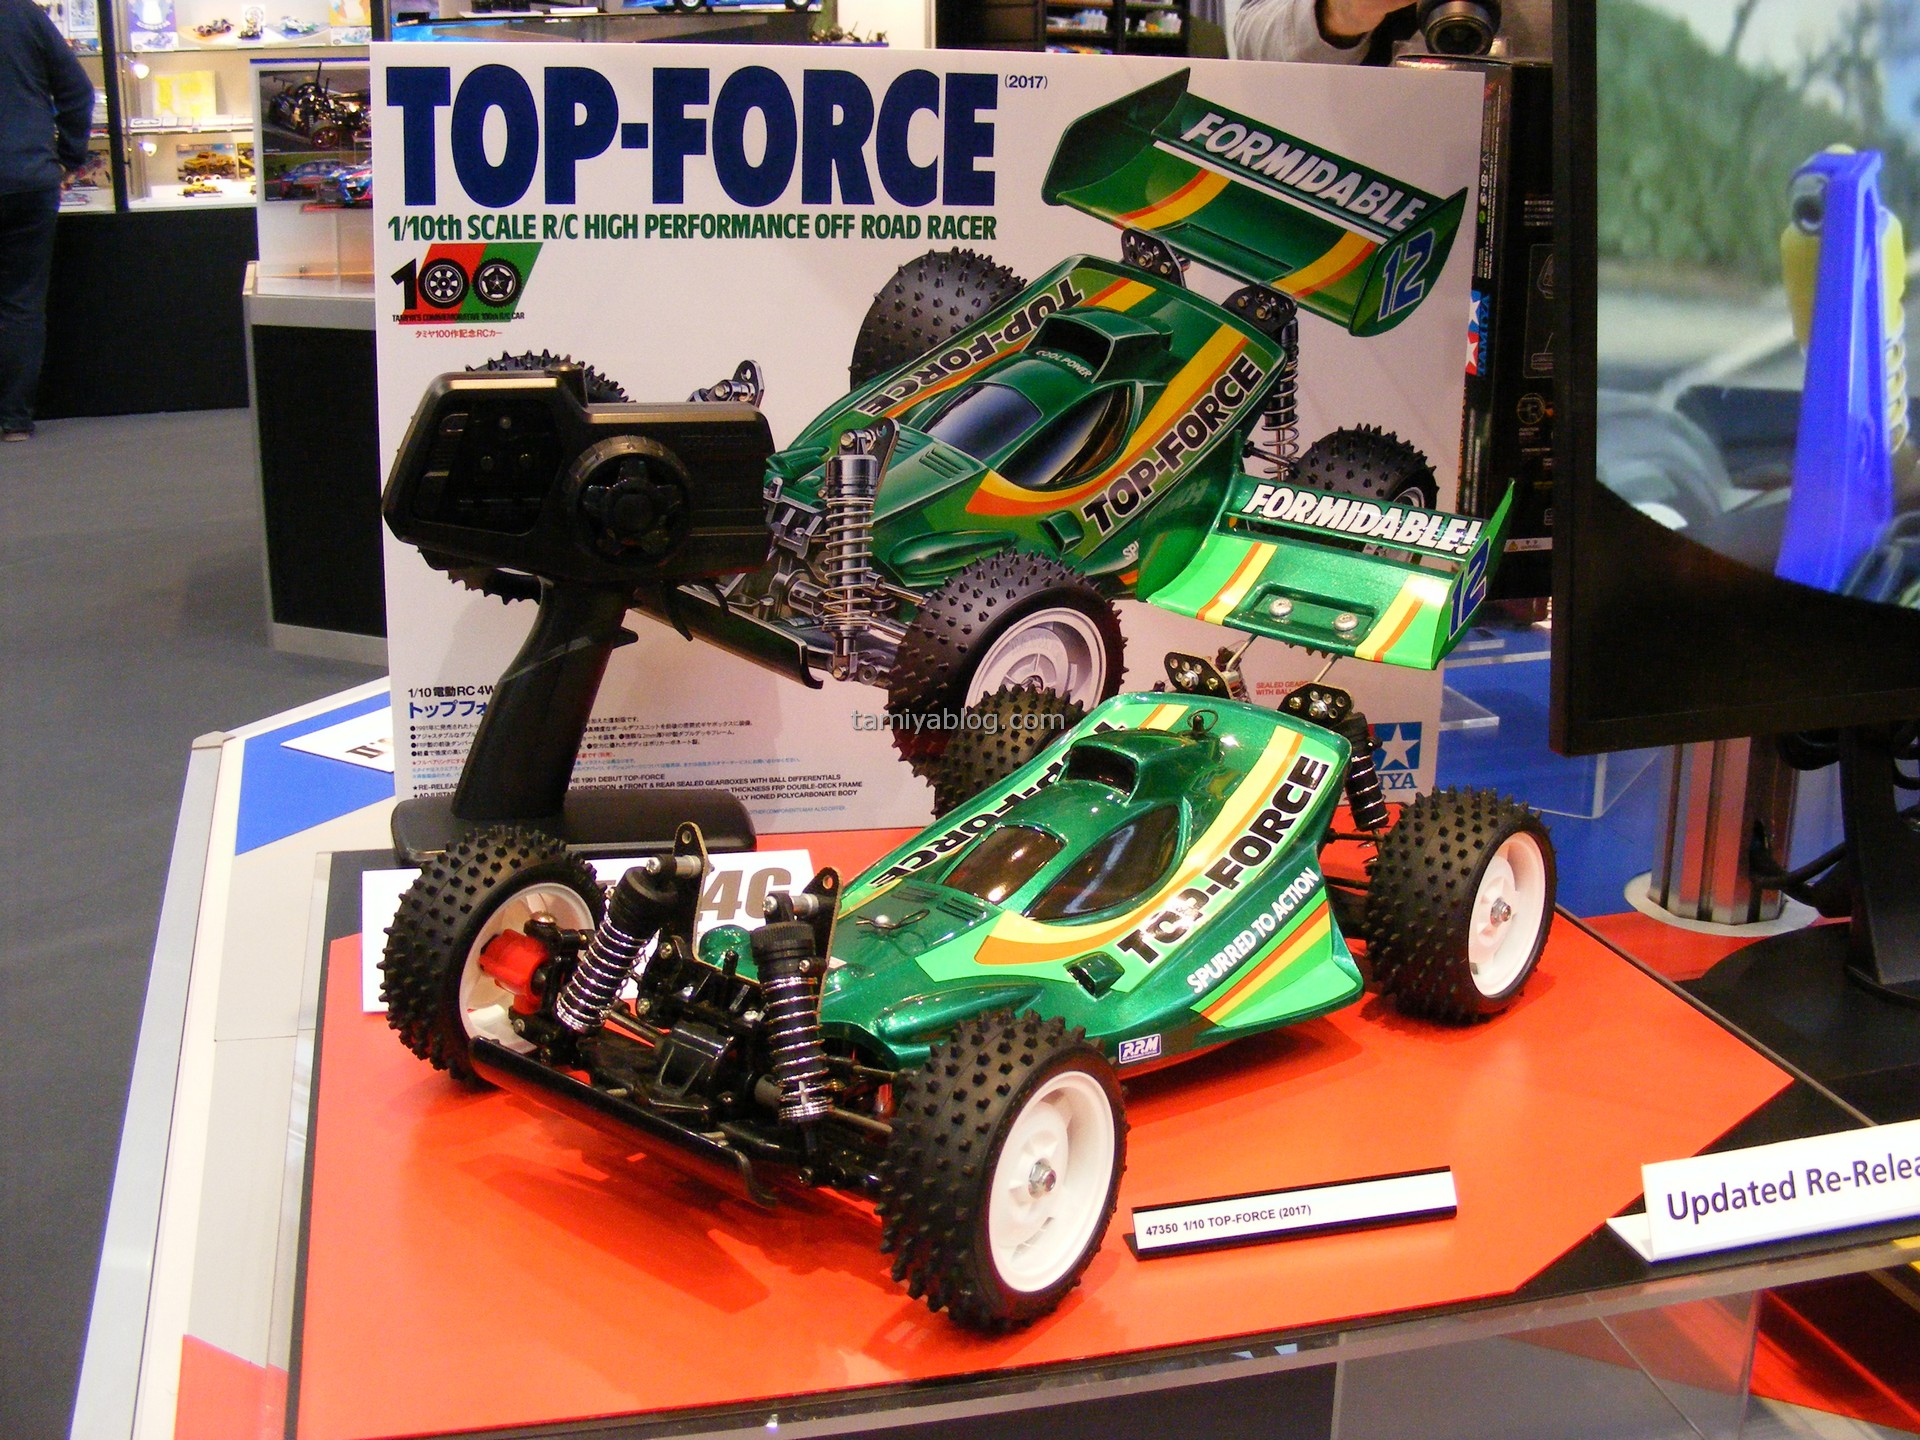 new rc car releasesNew Tamiya RC model releases at Nuremberg Toy Fair Spielwarenmesse